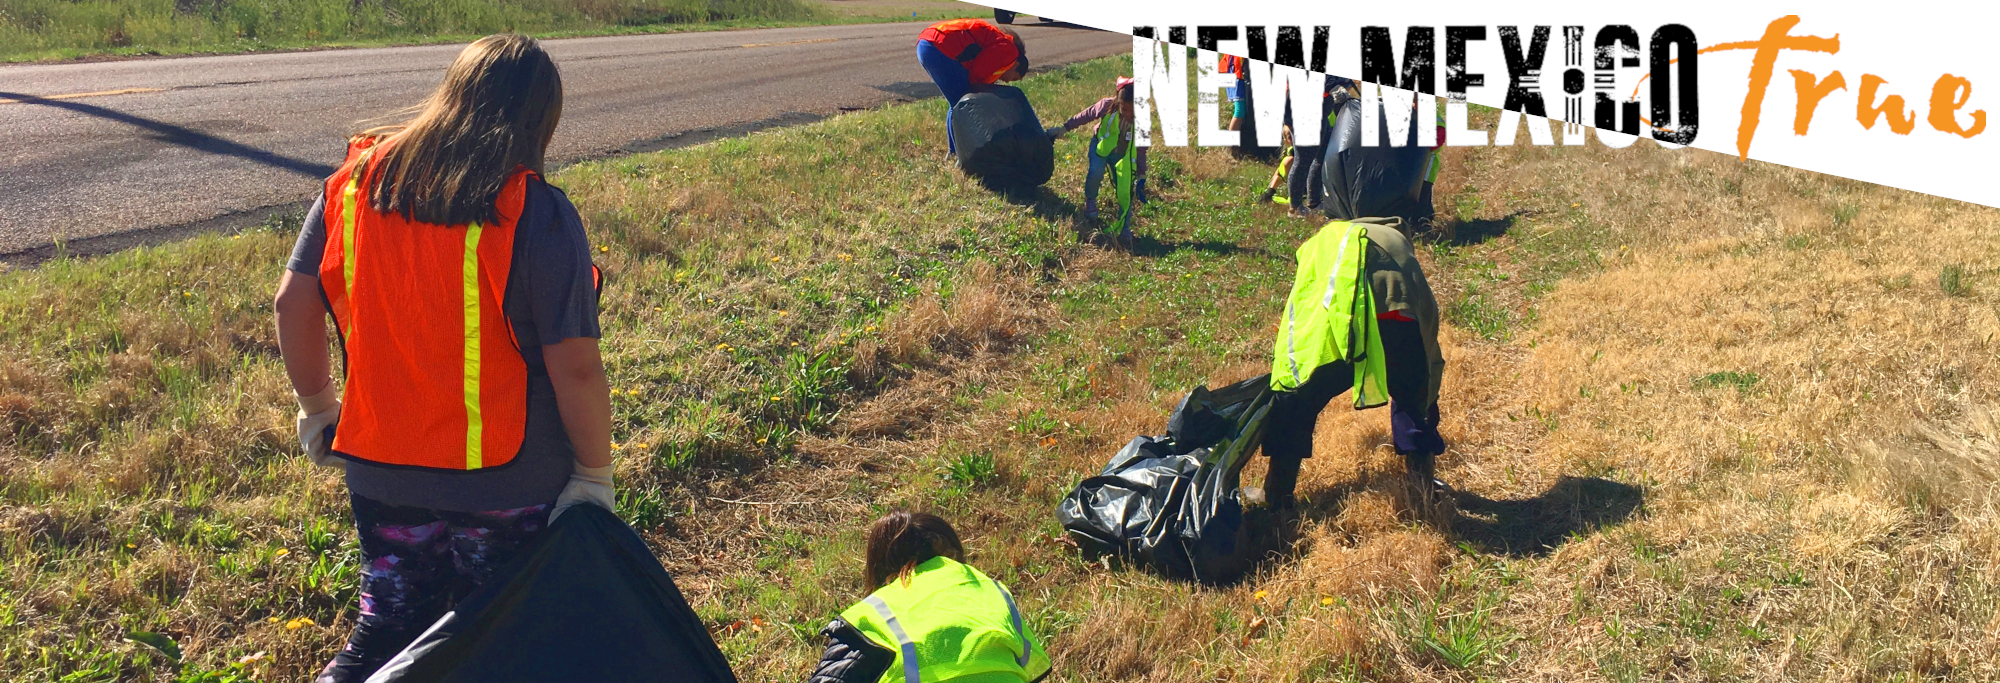 New Mexico True Road Cleanup Banner